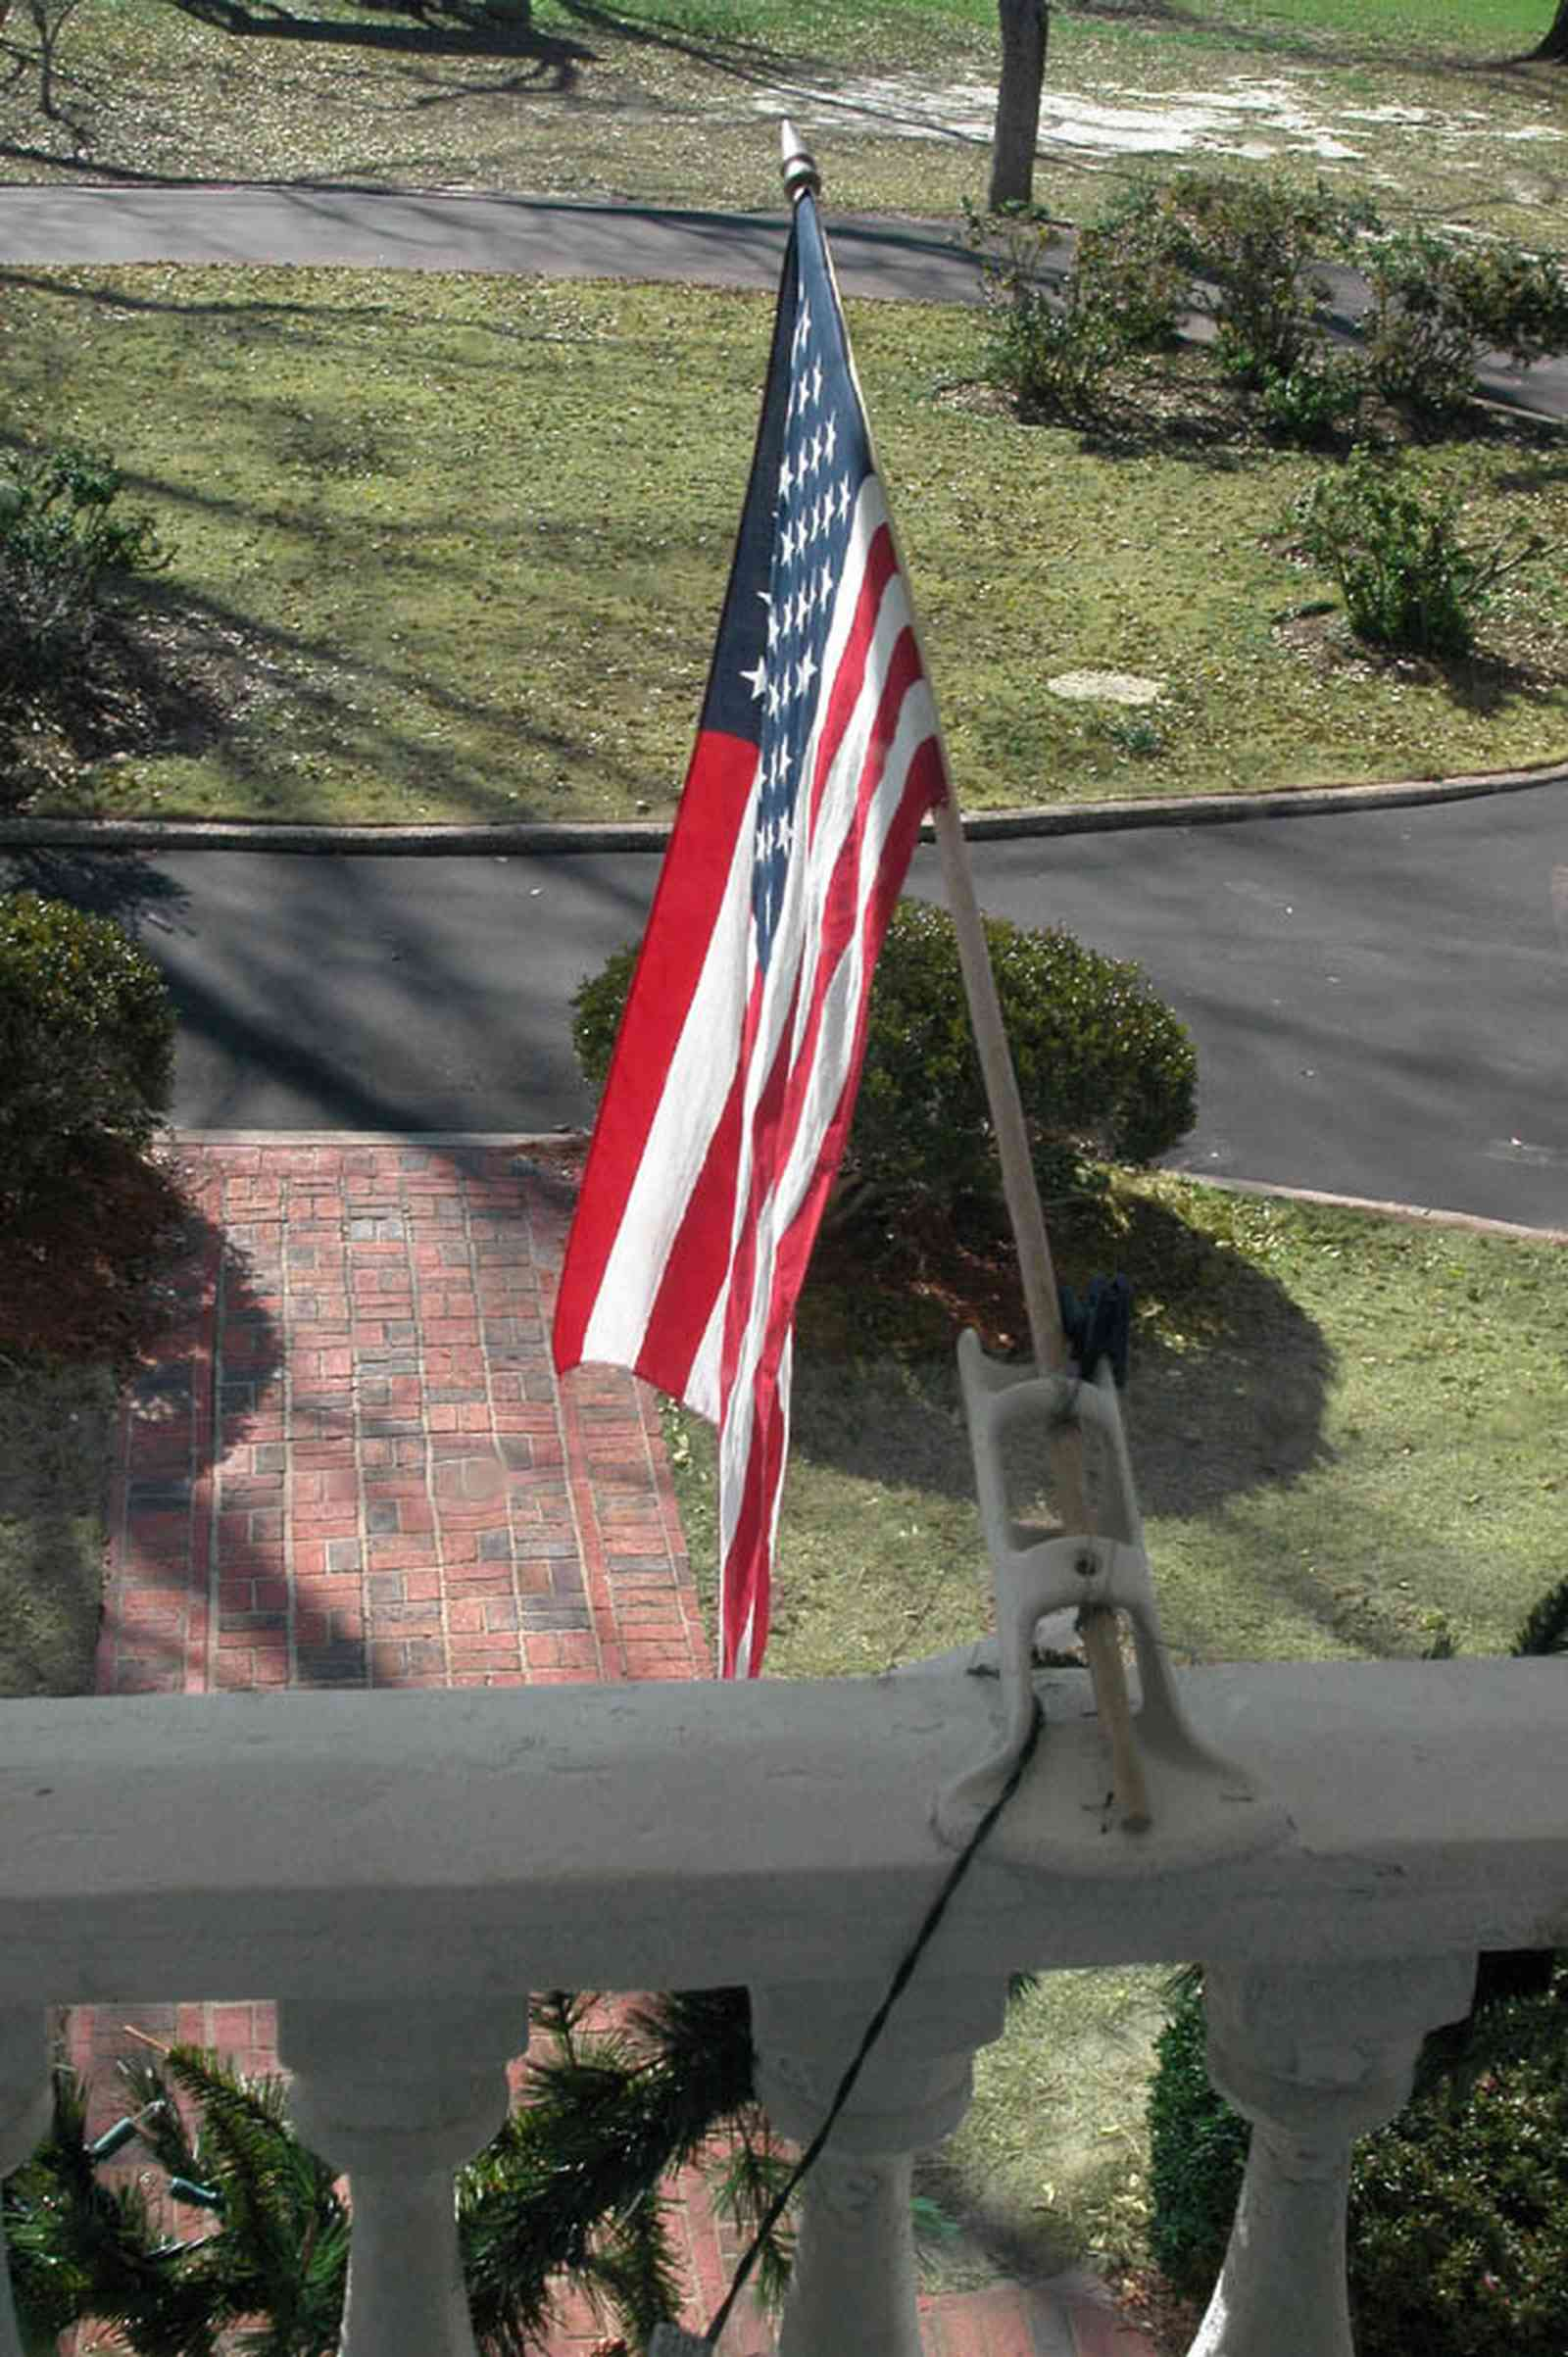 Century:-Tannenheim_01w.jpg:  balcony, american flag, balustrade, brick sidewalk, driveway, mansion, plantation home